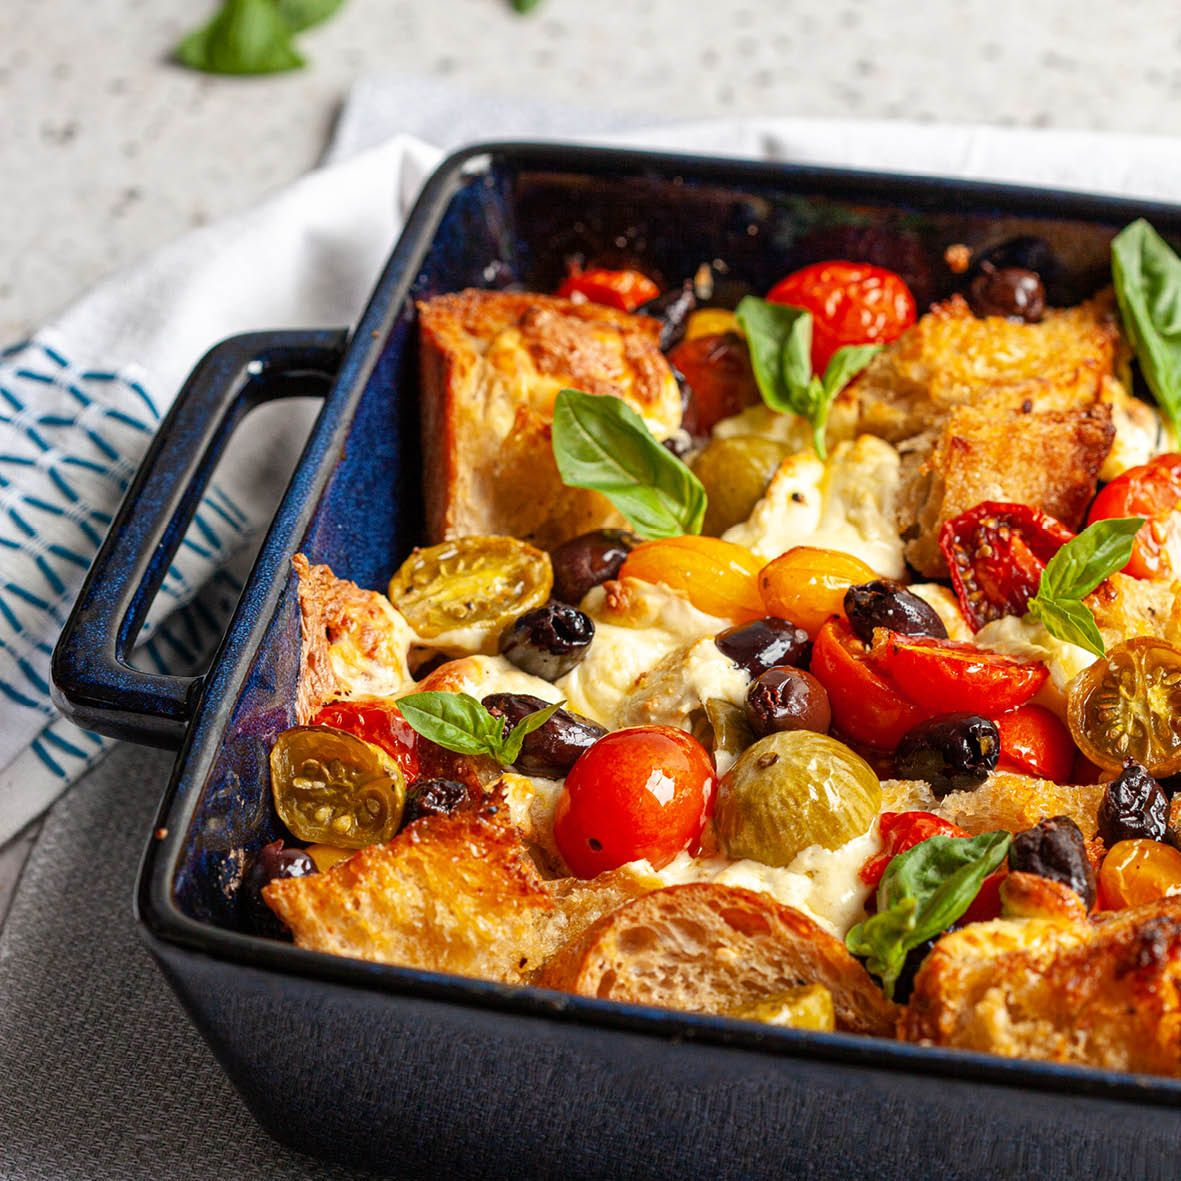 Baked_Westhaven_Cow_Fetta_with_Tomatoes_and_Olives.jpg